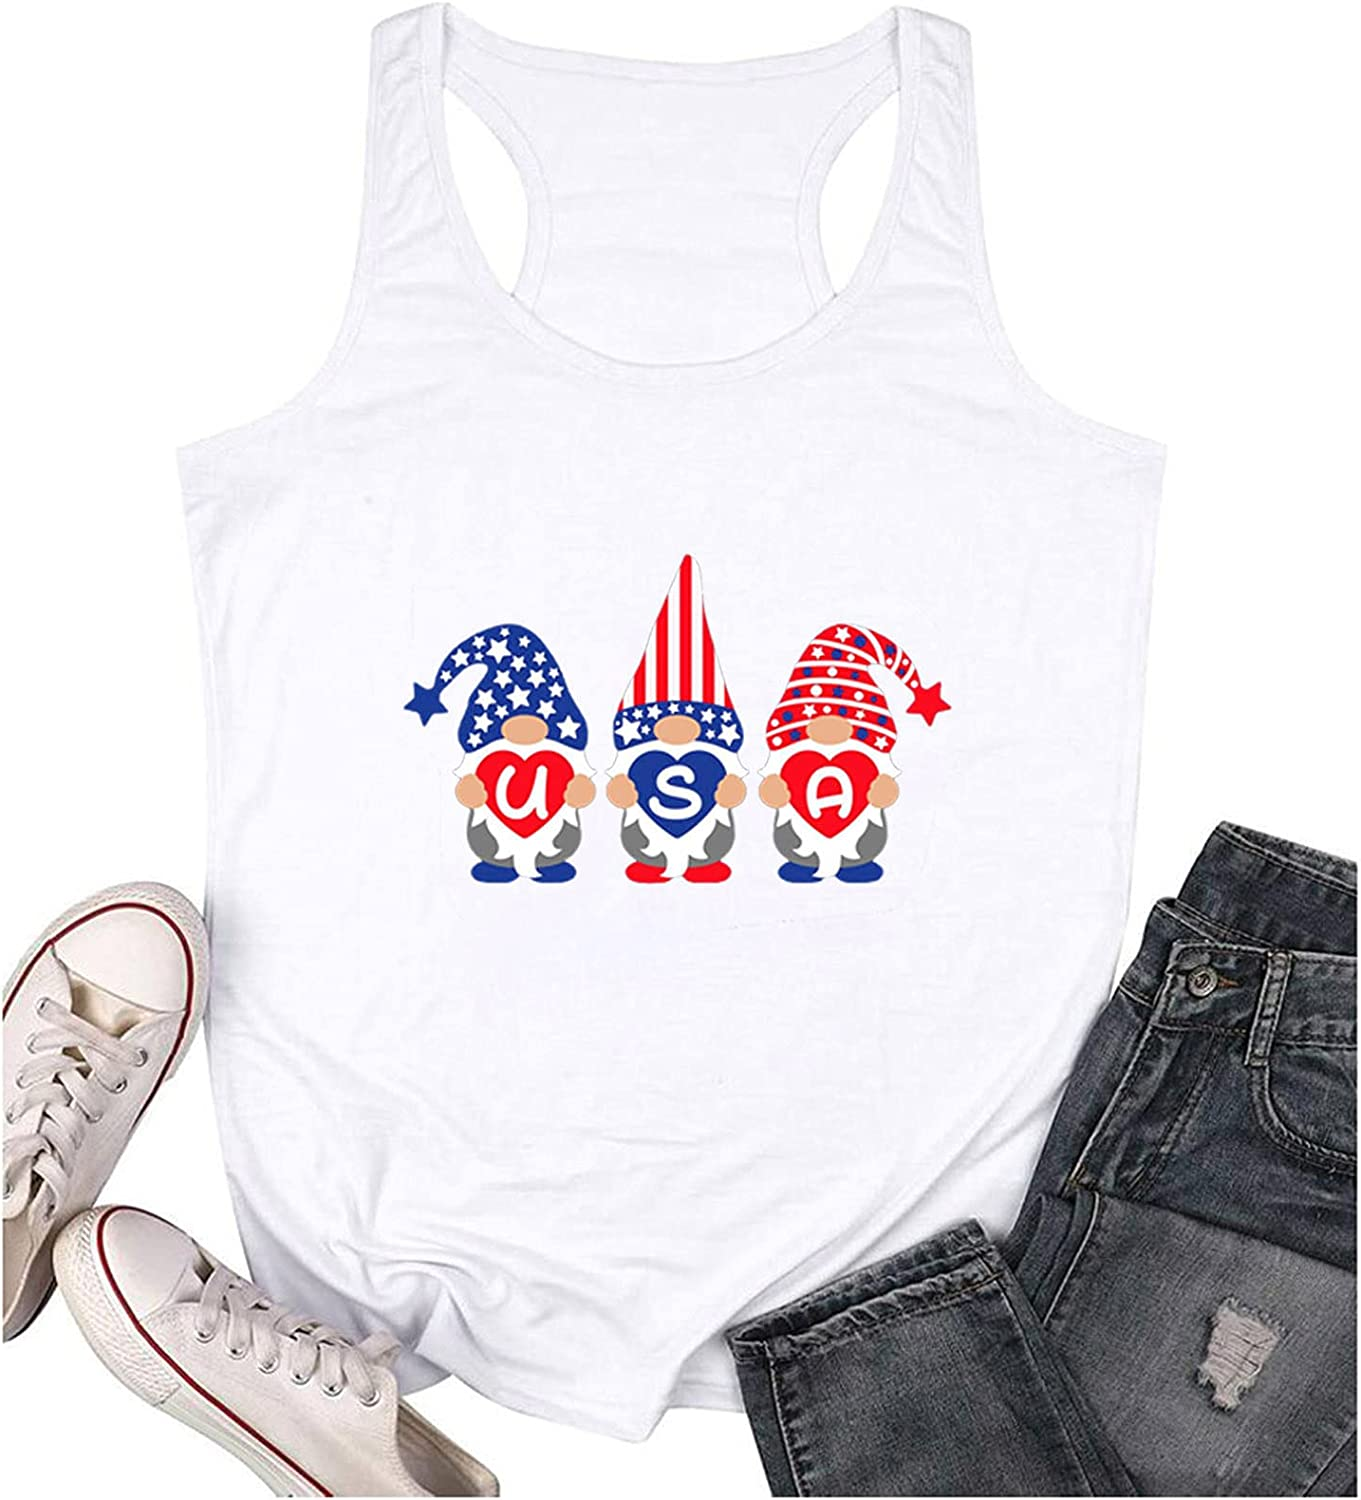 Aukbays Womens Leopard American Flag Star Tank Tops Cute July 4th Independence Day Graphic Tees Shirts T-Shirts Blouses